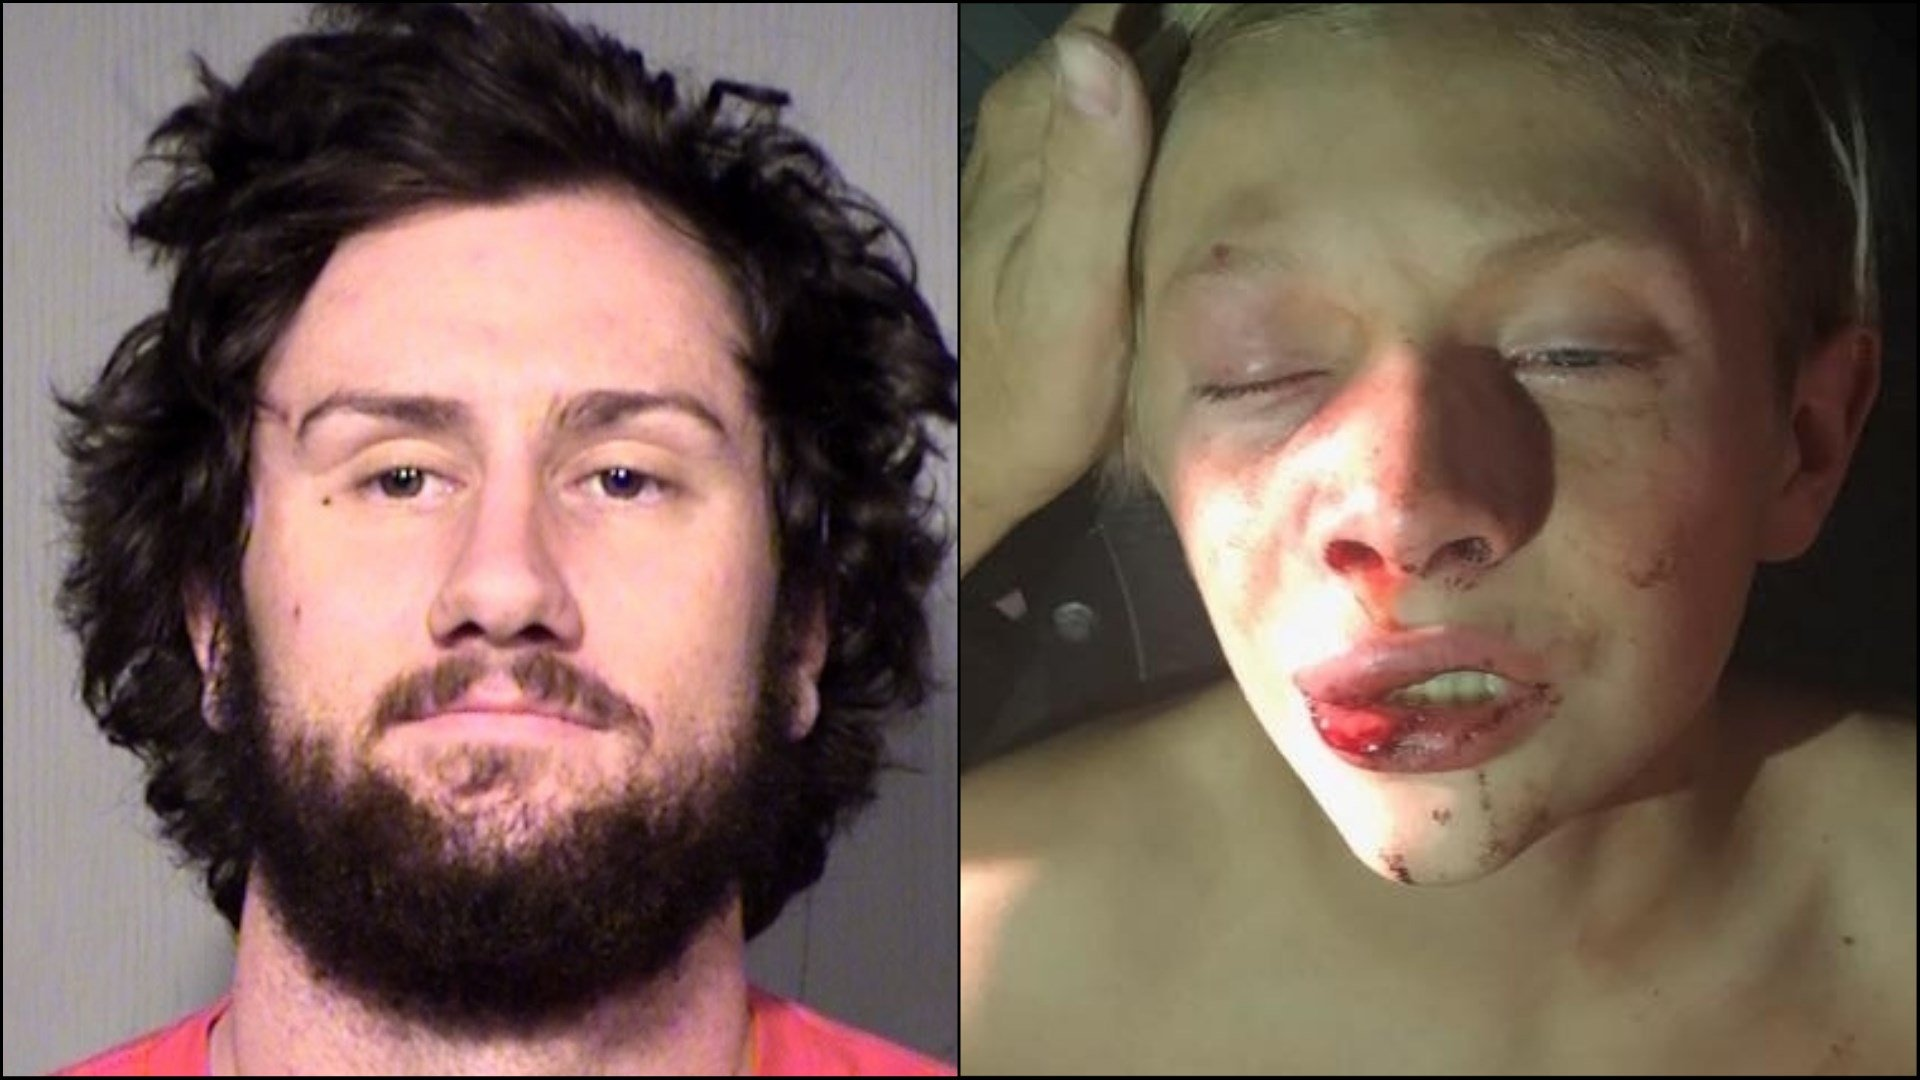 Johnathan Larocque and 13-year-old alleged victim (Source: Maricopa County Sheriff's Office and GoFundMe)